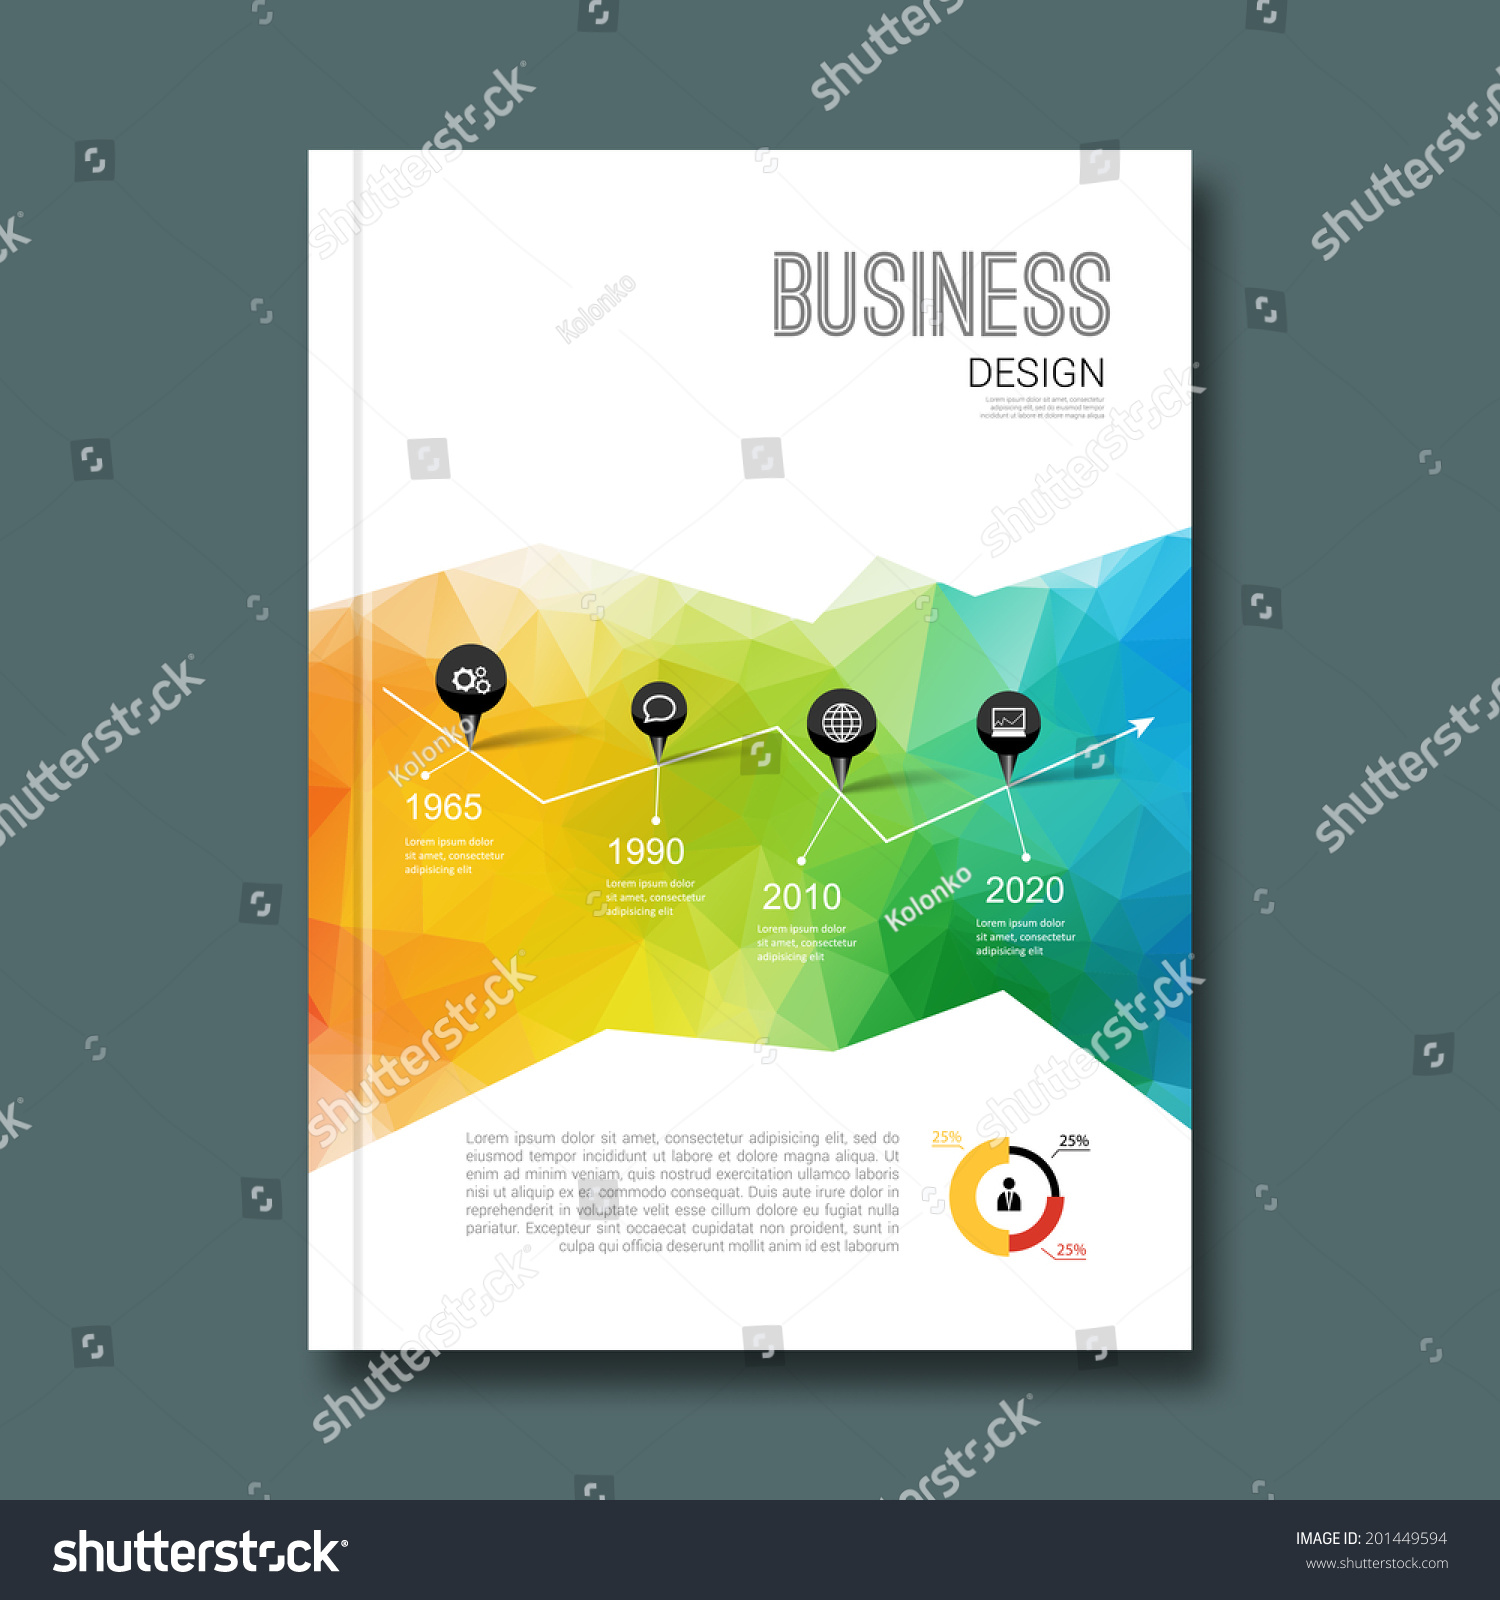 Business Book Cover Uk : Business design background cover book report stock vector